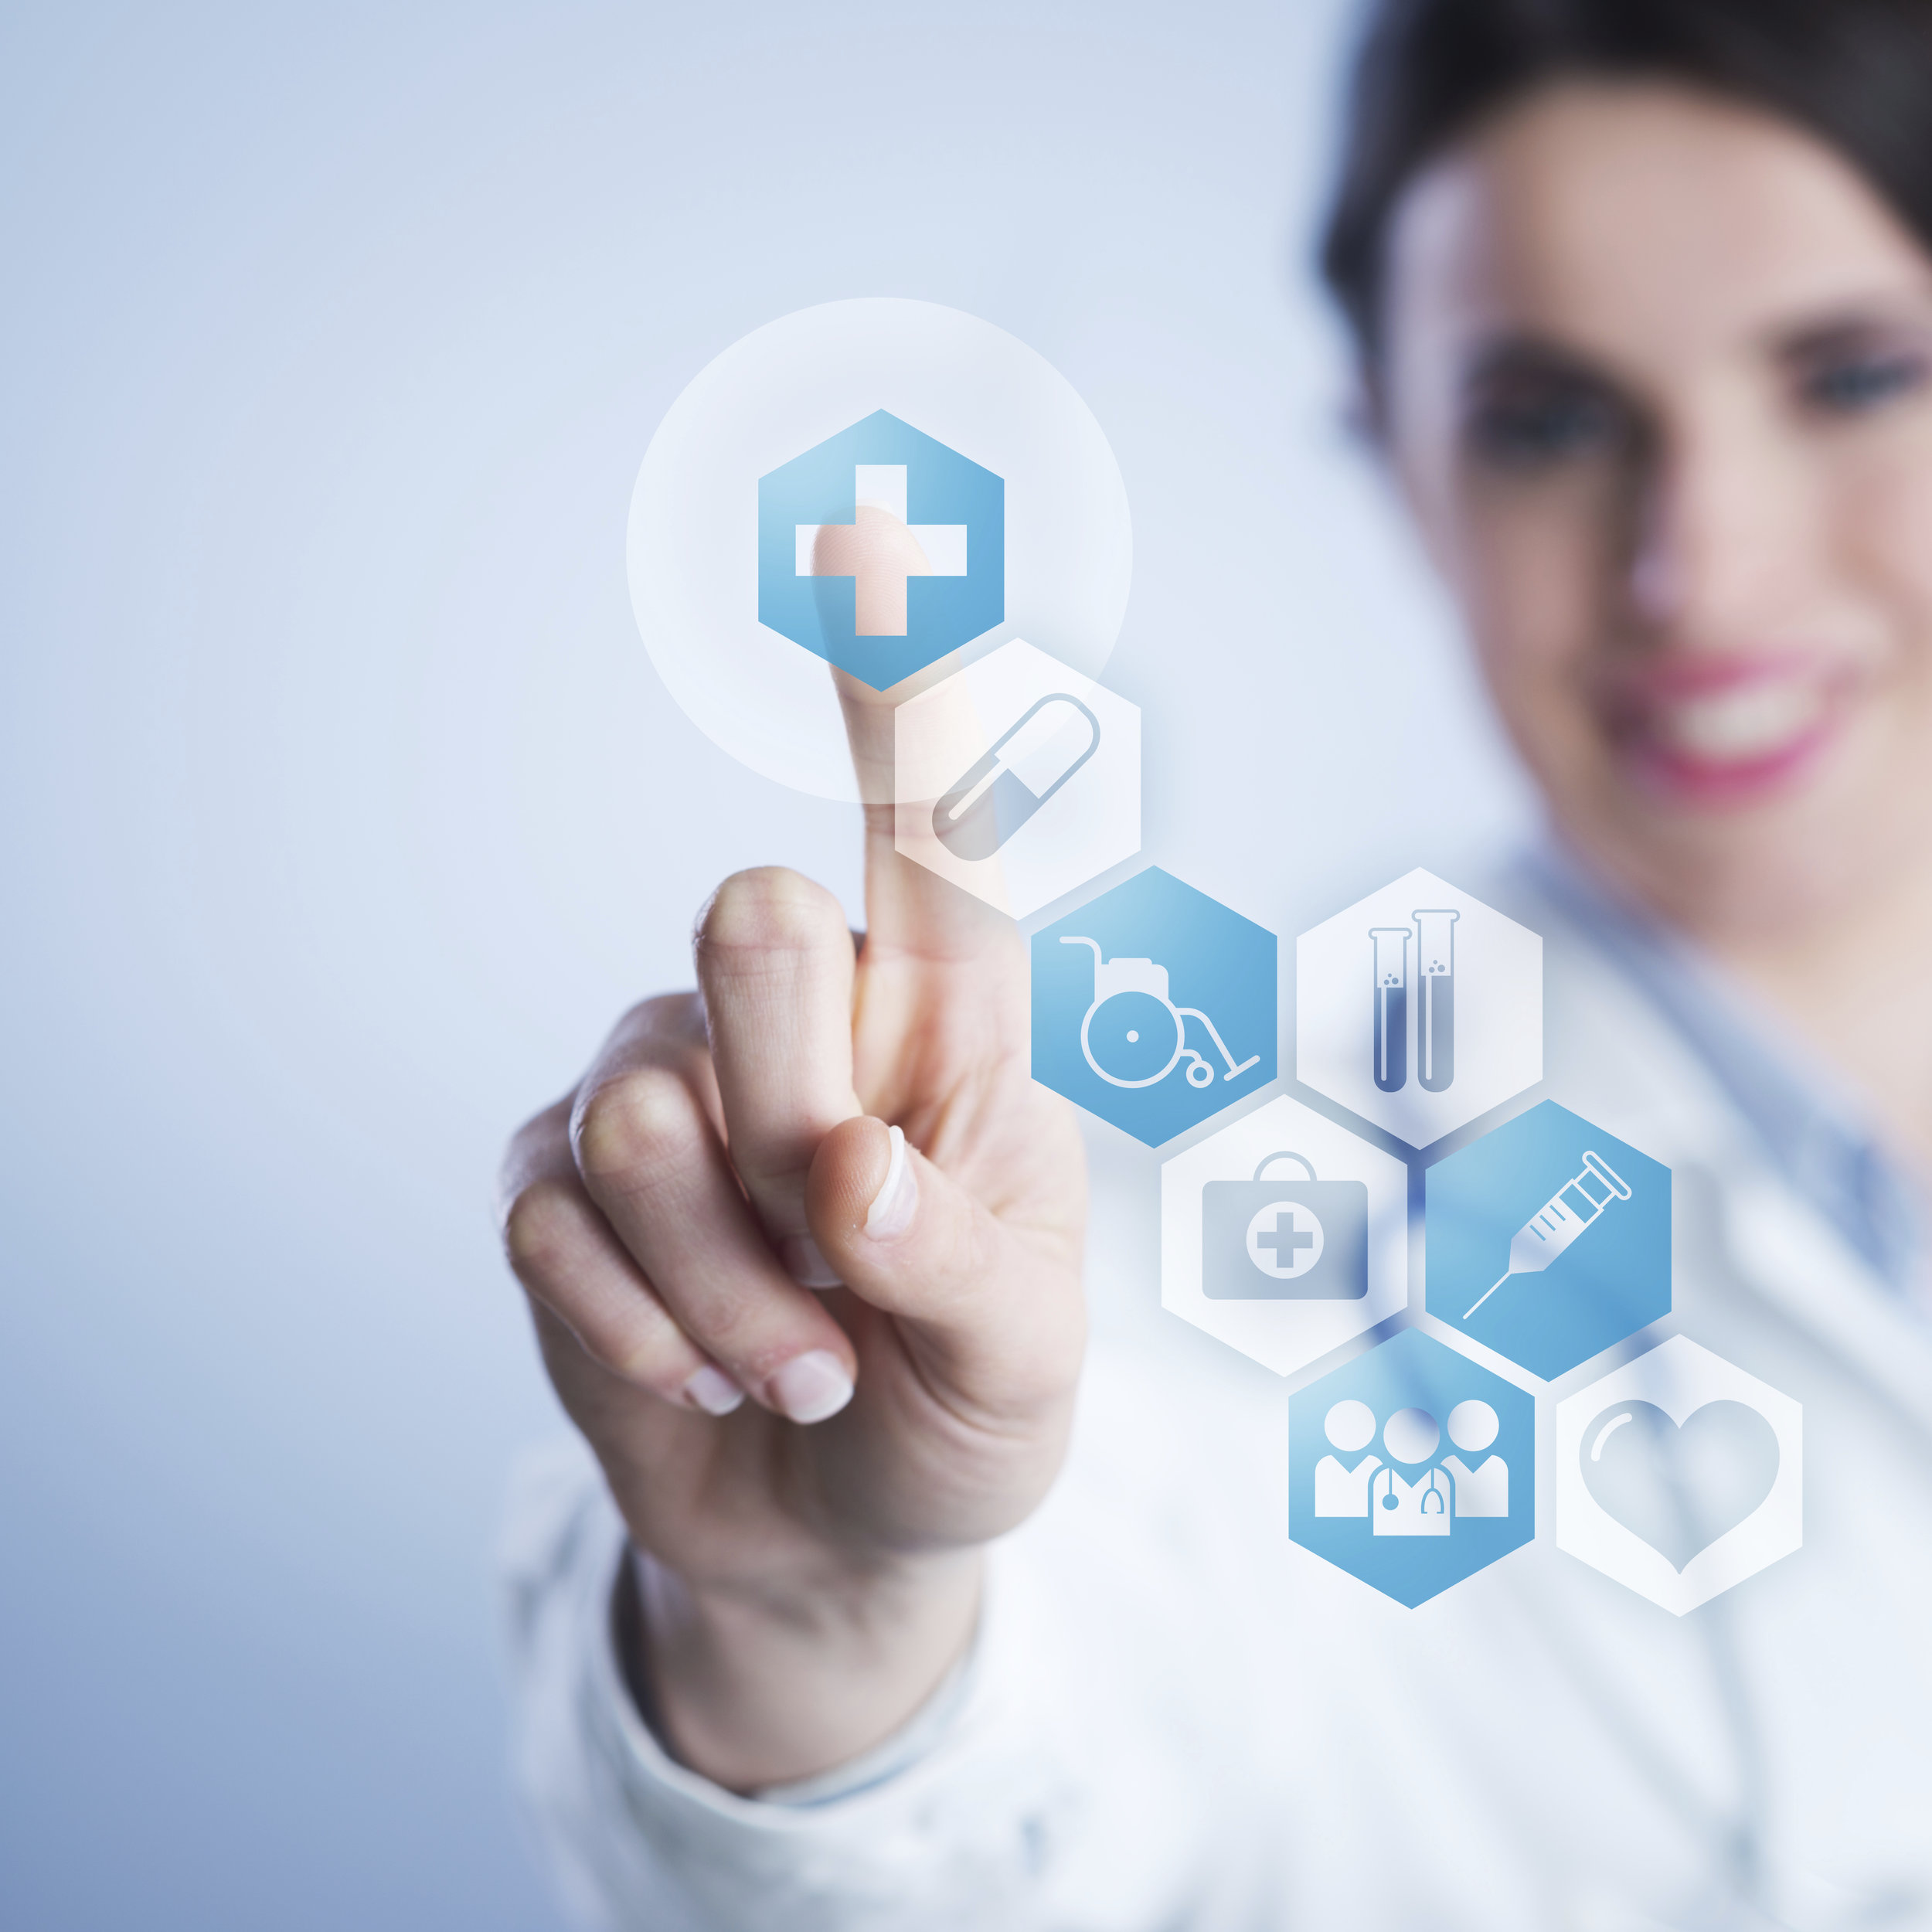 Young-female-doctor-using-touch-screen-interface-000038954294_XXXLarge.jpg